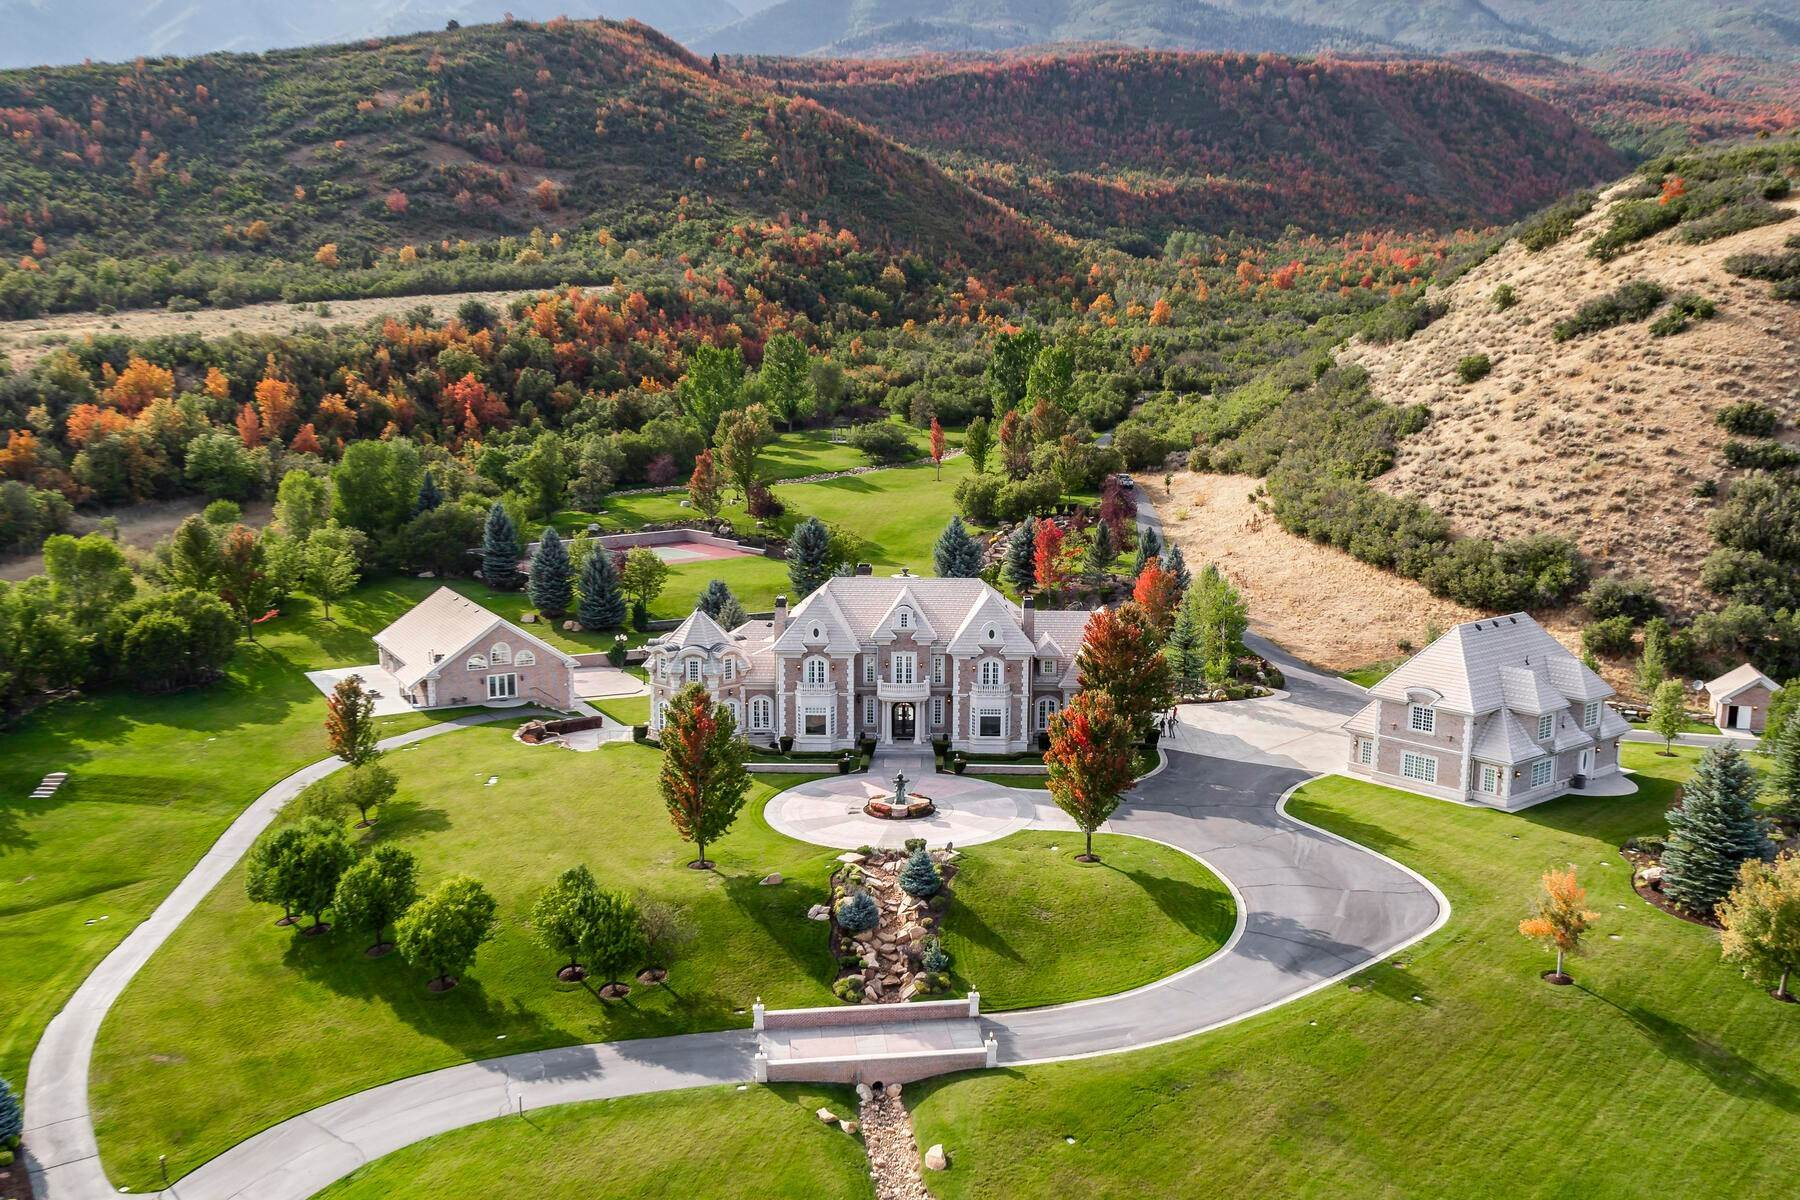 Property για την Πώληση στο Hobble Creek Ranch—Luxury Estate on 3,387 Acres 533 N Left Fork Hobble Creek Cyn, Springville, Γιουτα, 84663 Ηνωμένες Πολιτείες